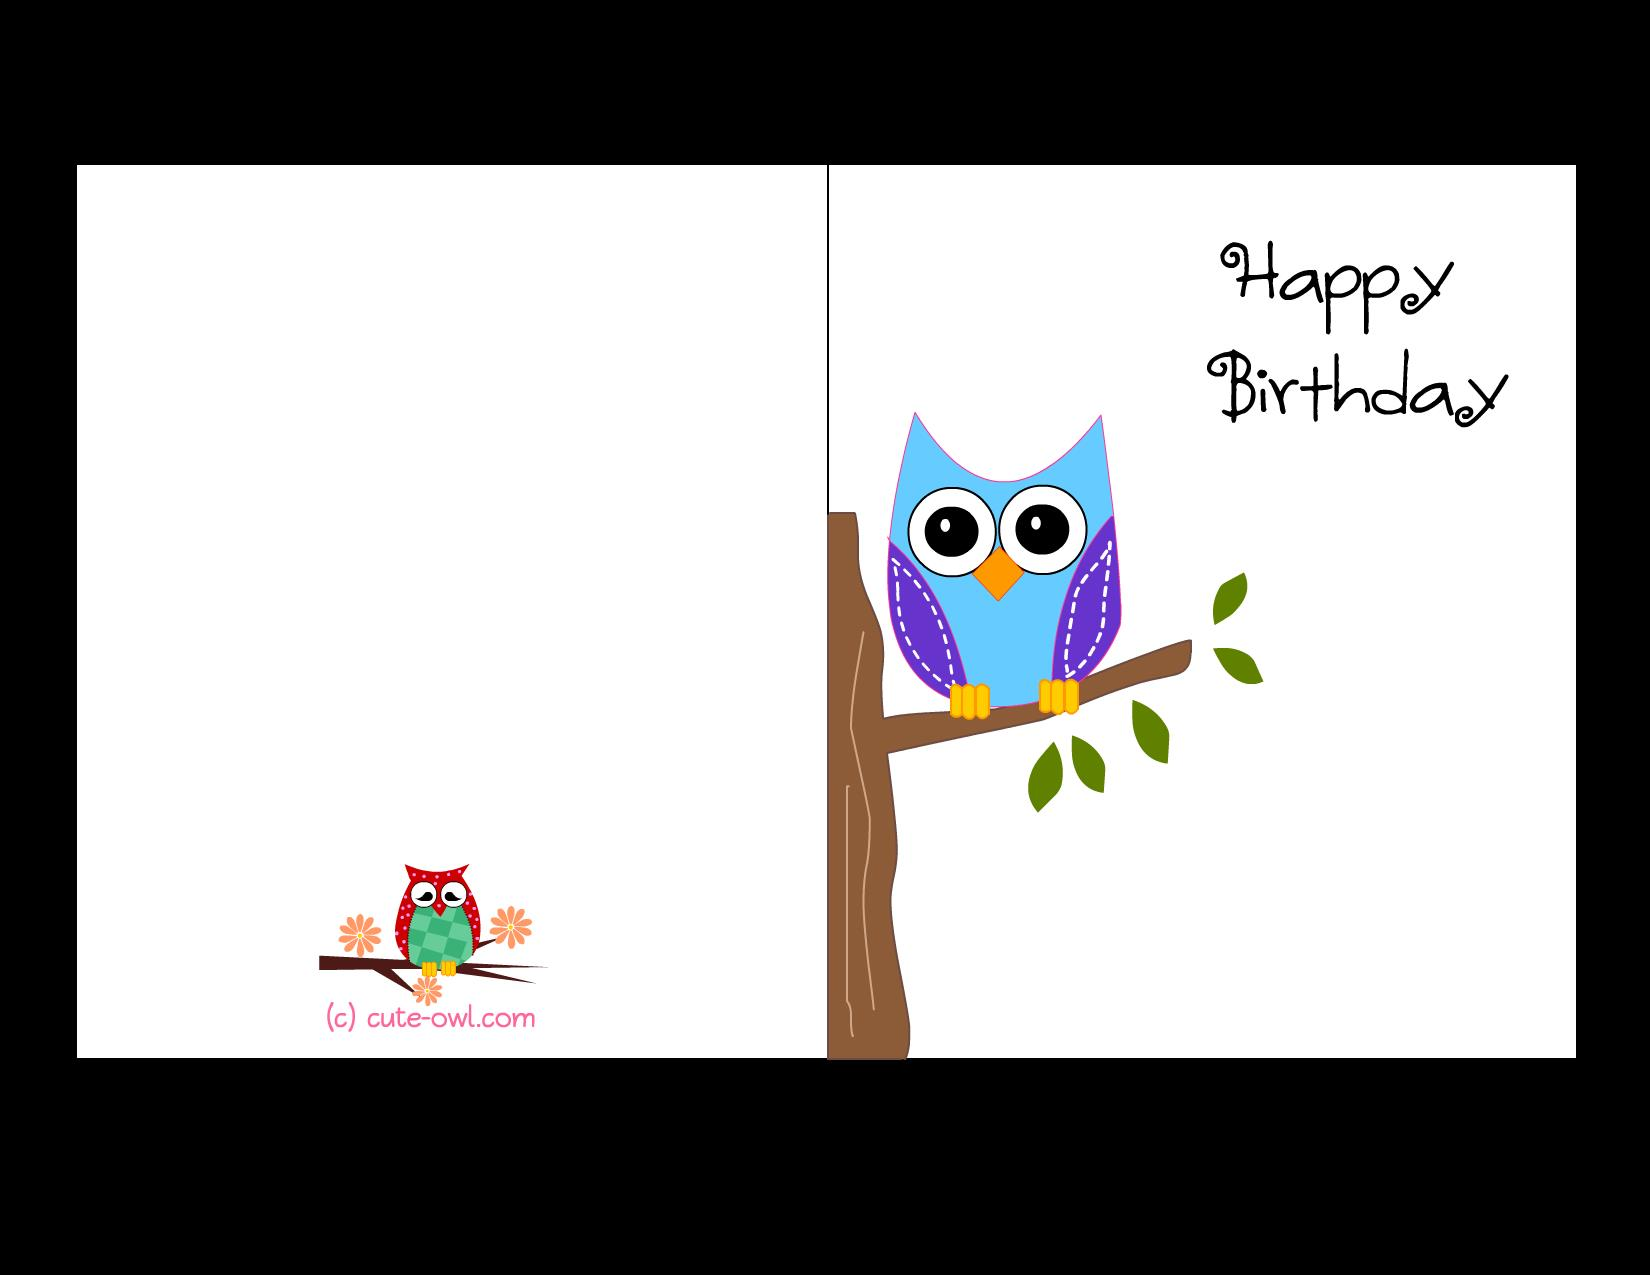 printable birthday cards free no sign up ; printable-bday-cards-printable-to-beatiful-printable-bday-cards-draw-photo-to-owl-birthday-card-3